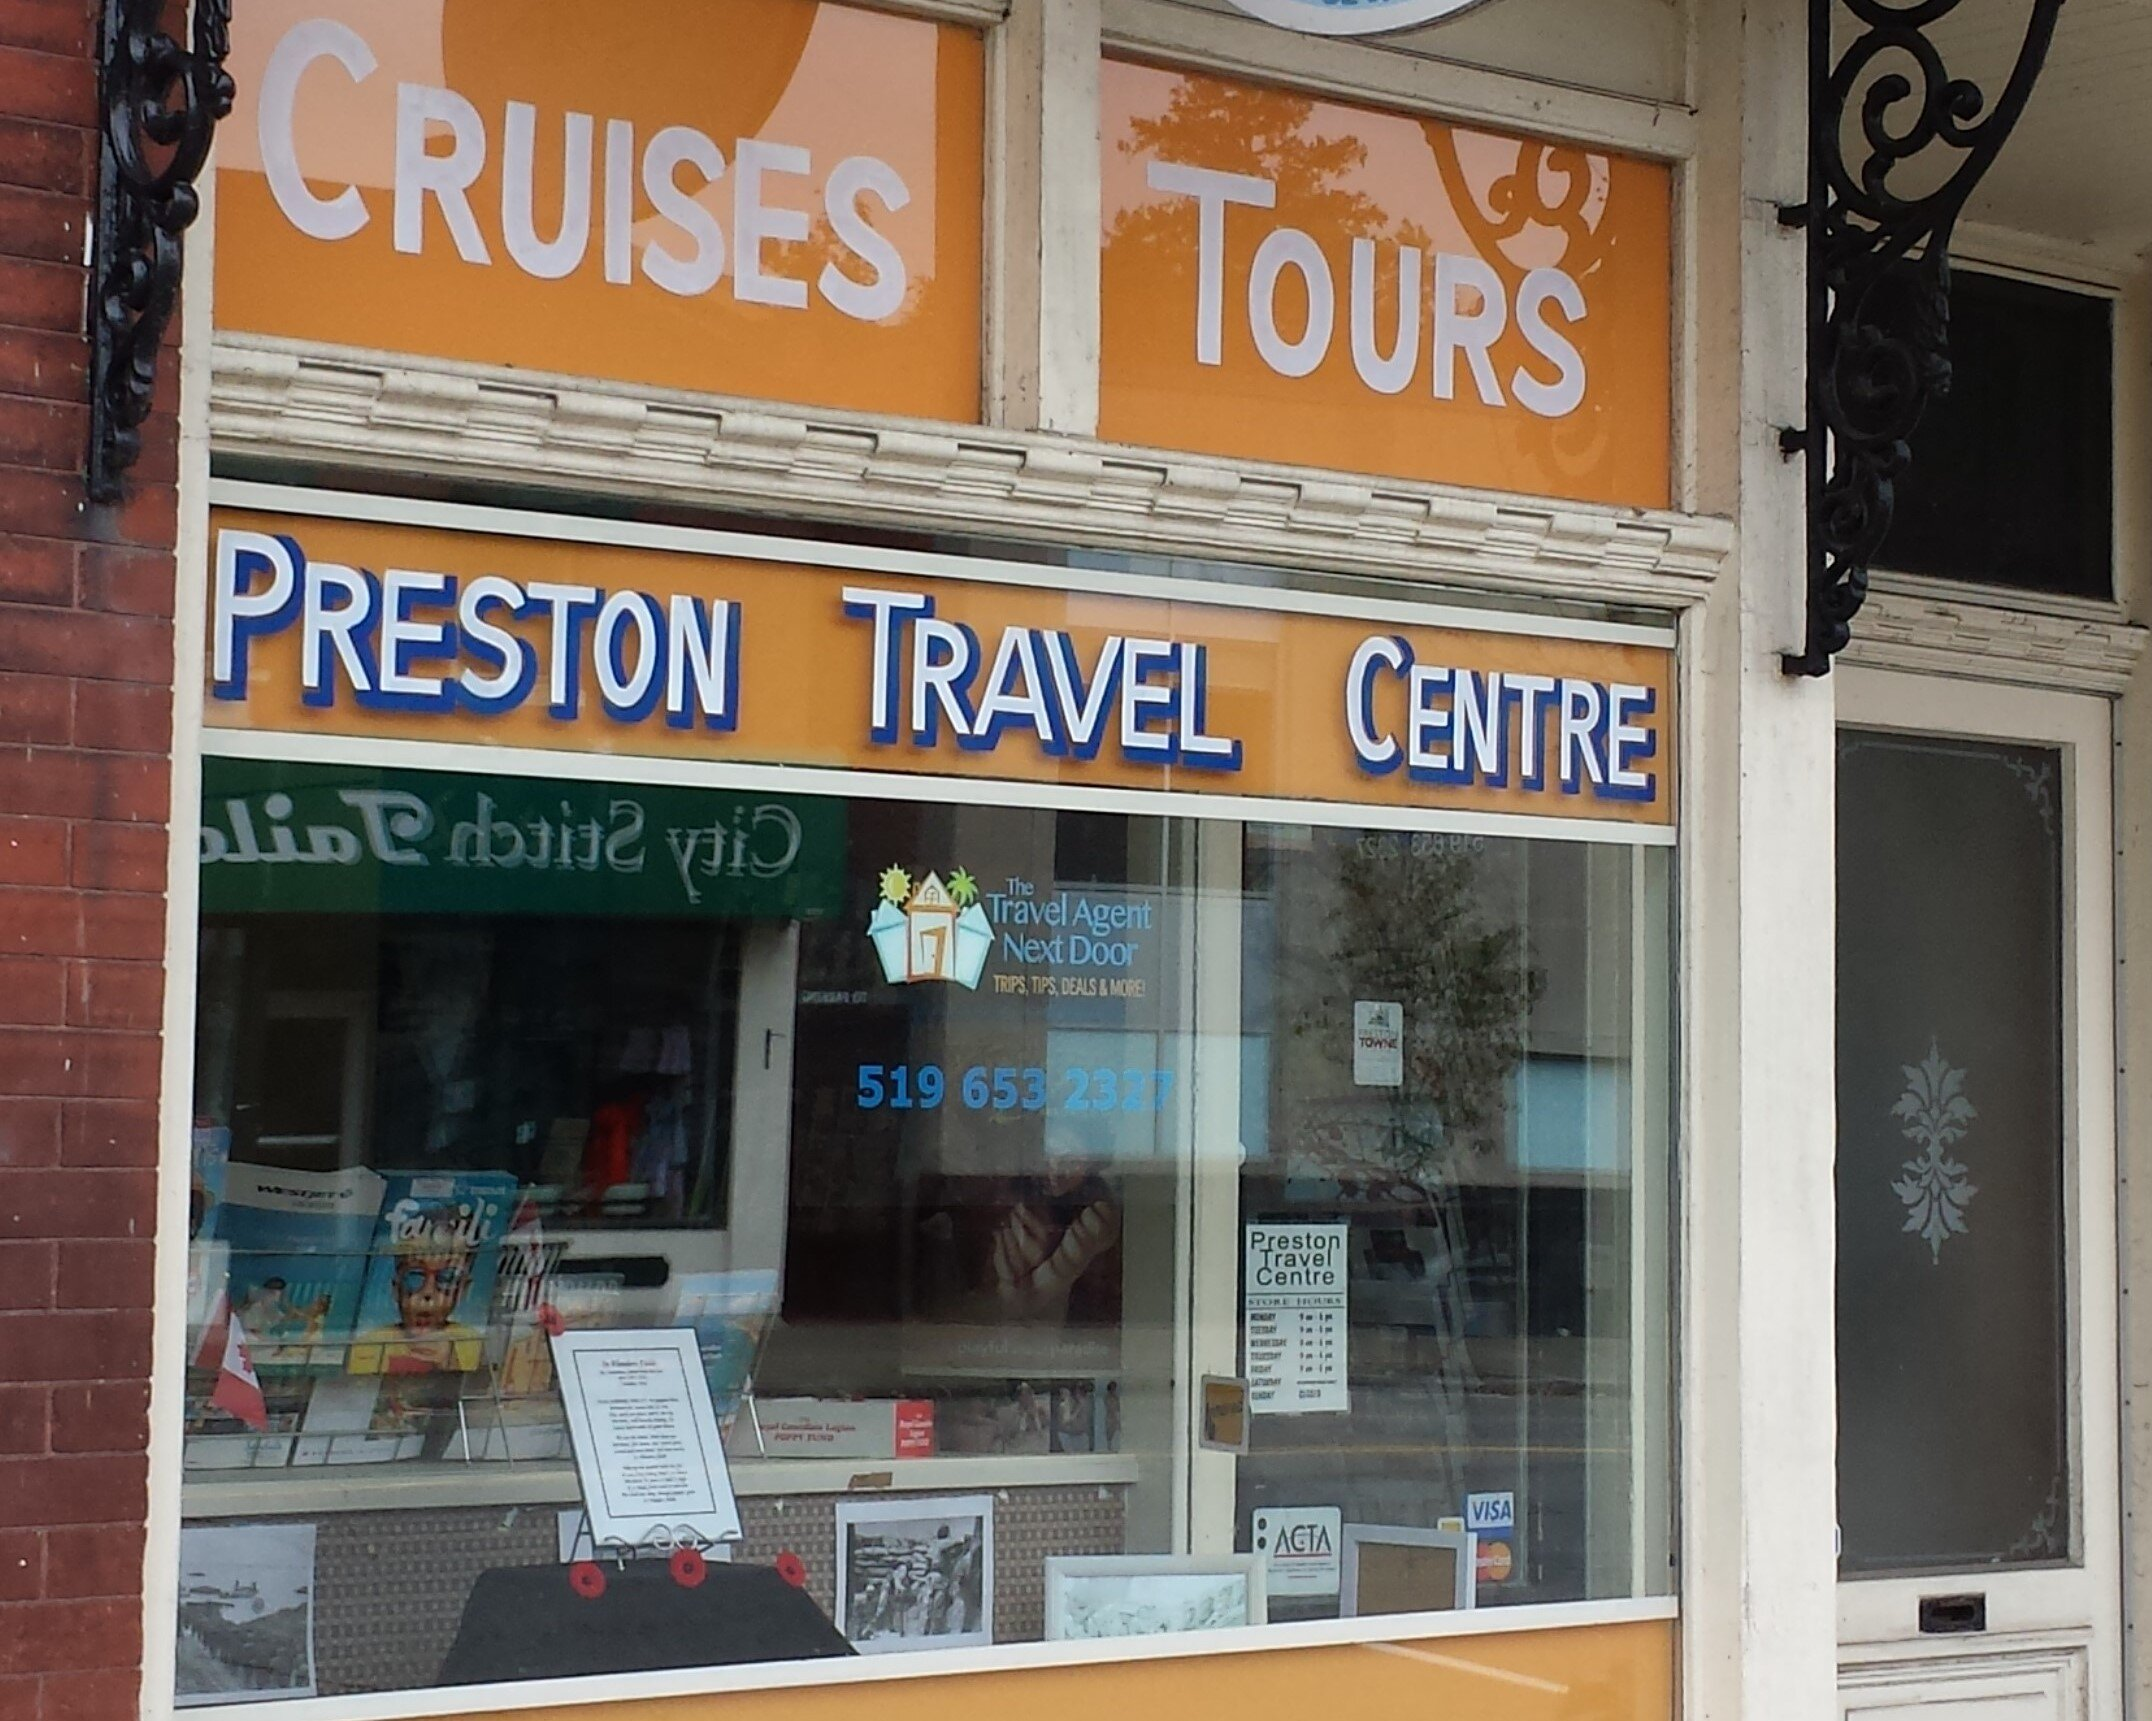 PRESTON TRAVEL THE TRAVELAGENTNEXTDOOR